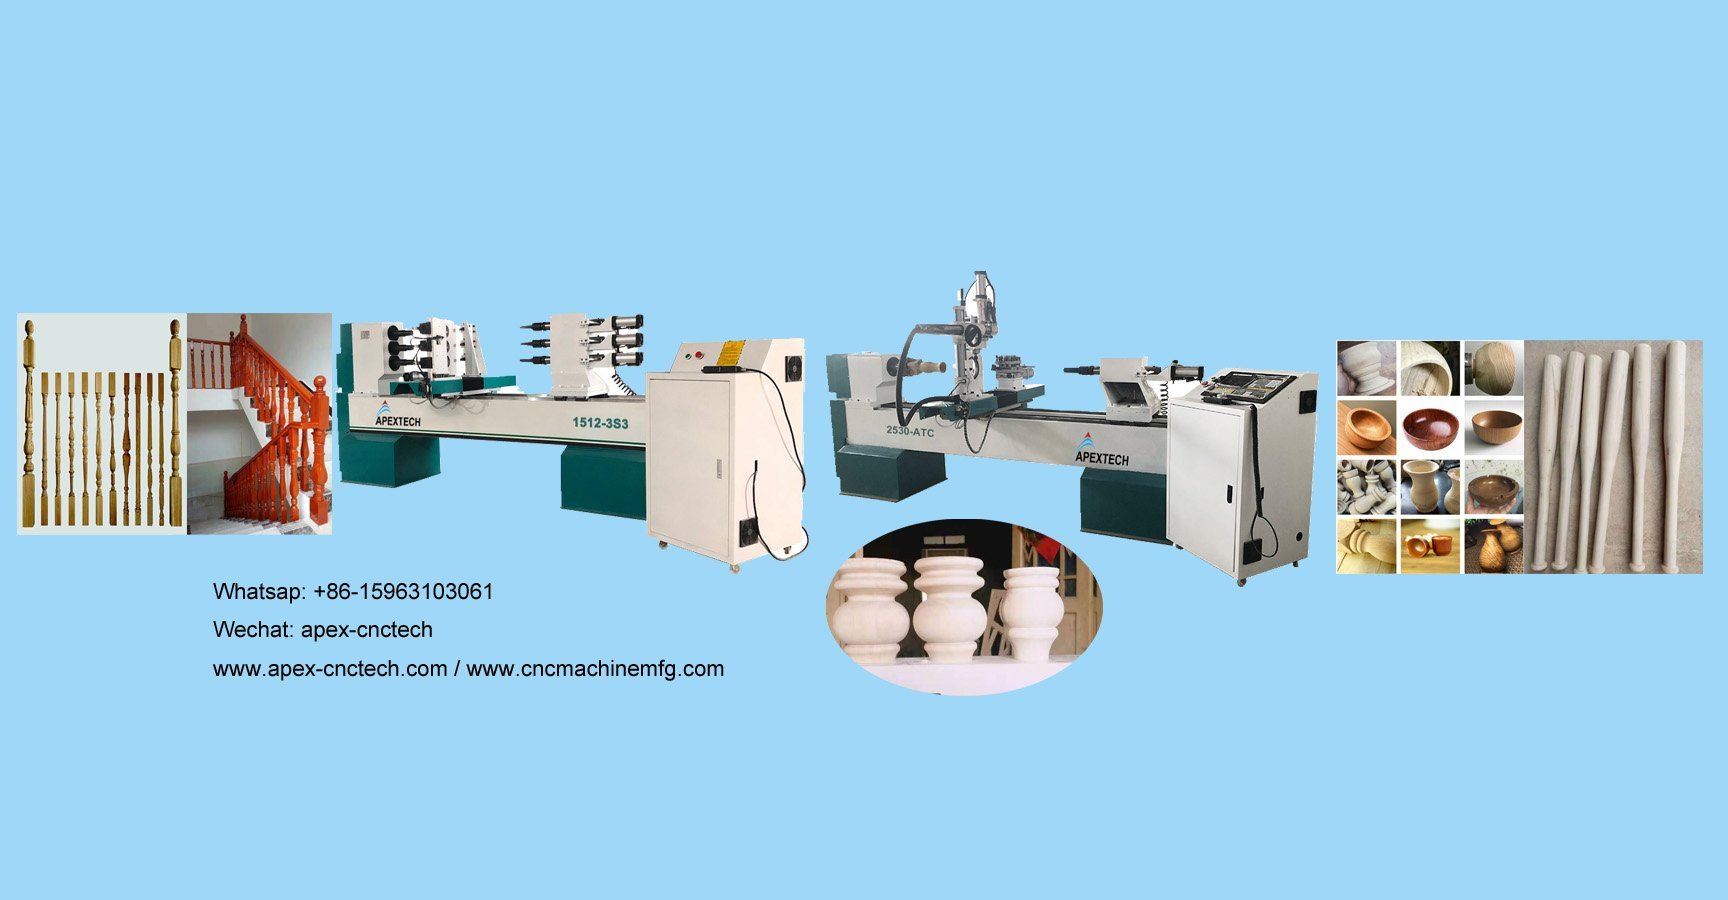 Wood CNC Lathe Turning Machine Agriculture Manual Tools Manufacturer For Hoes Shovels Handle Cutter